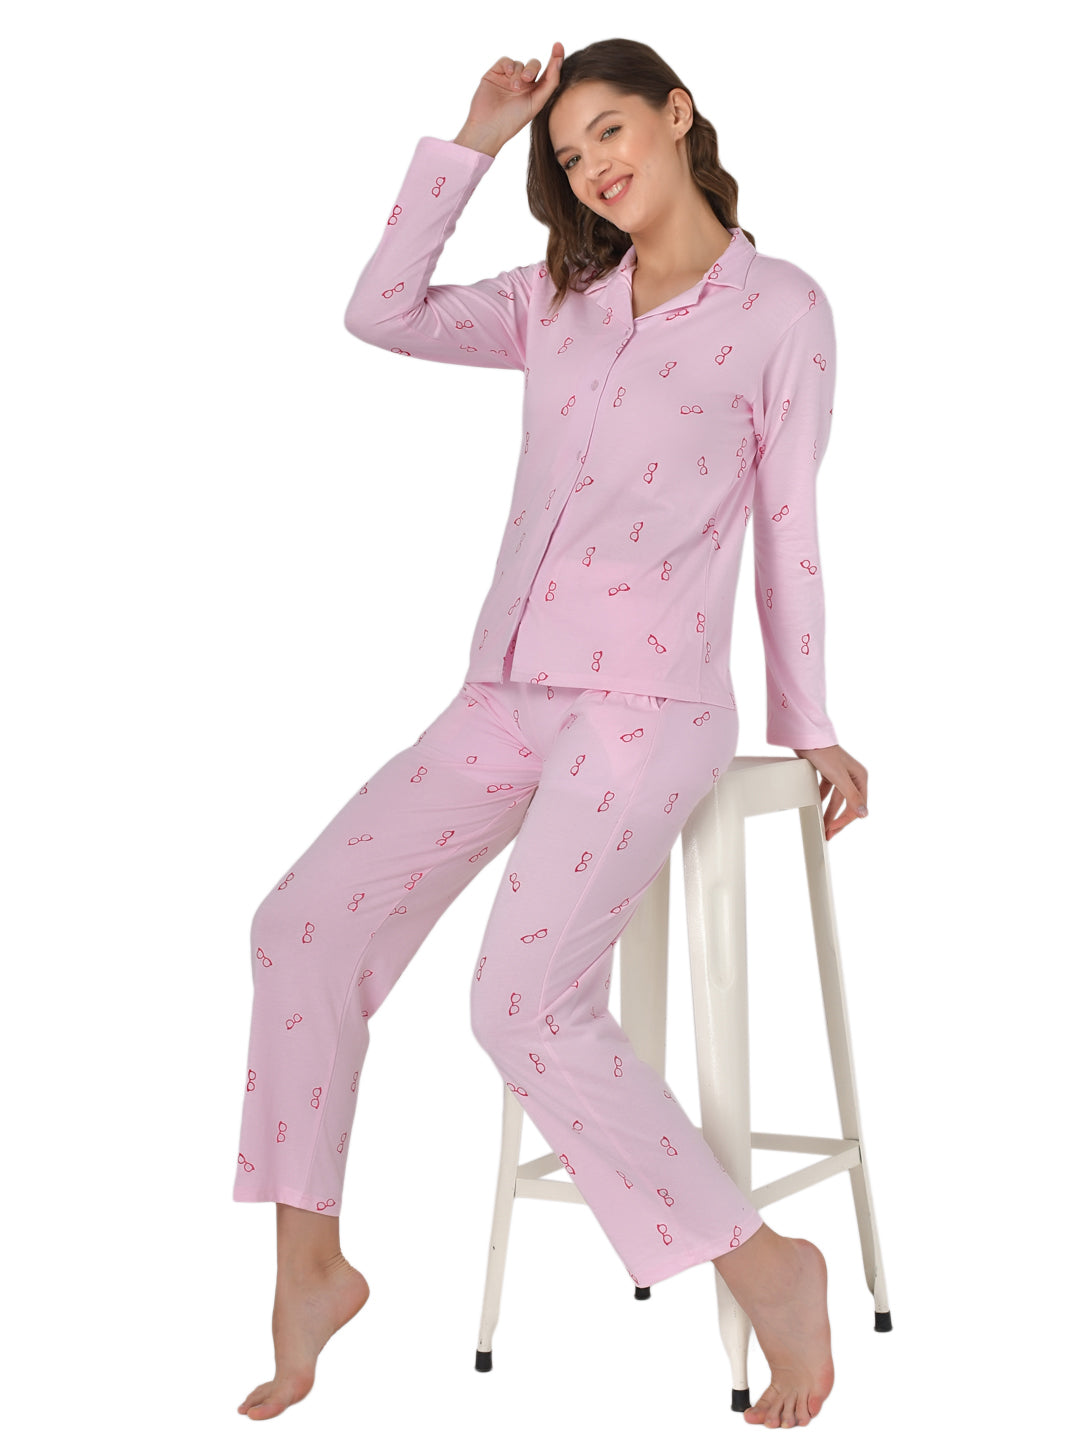 Klamotten Women's Baby Pink Allover Printed Top Pyjama Set N54Rb